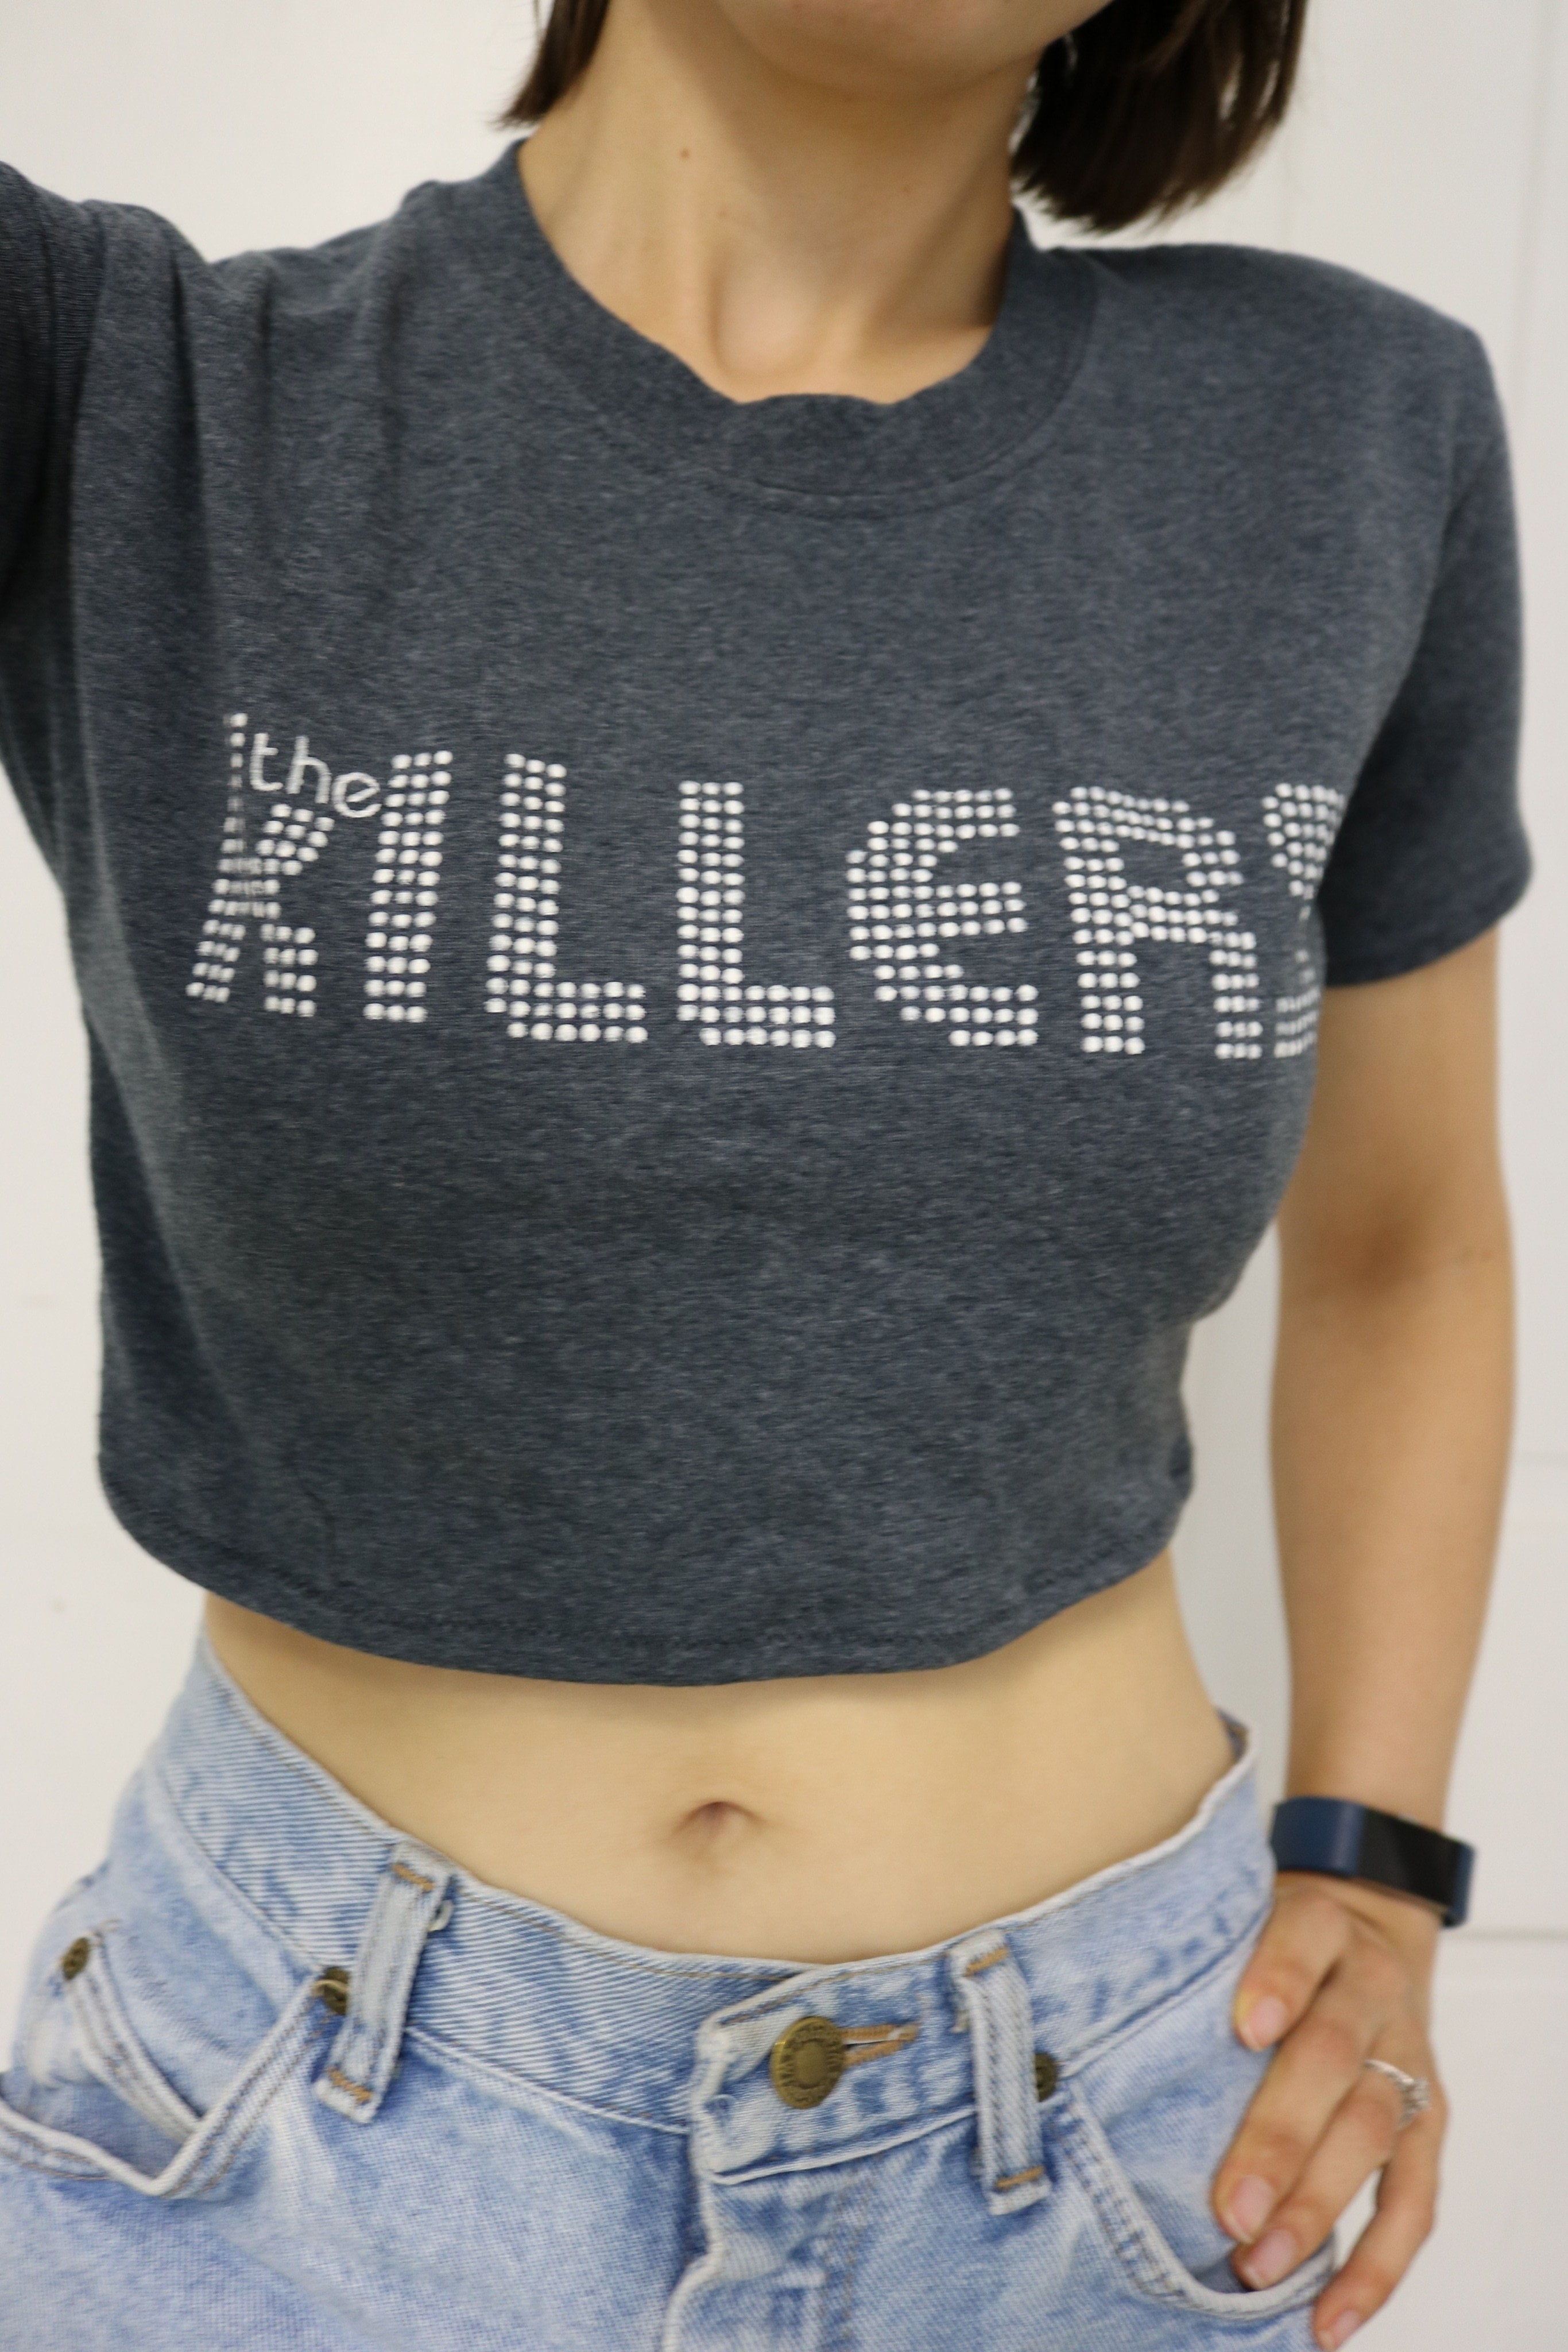 337b5d628074c Diy Tailor A Crop Top · How To Make A Revamped T Shirt · Sewing on ...